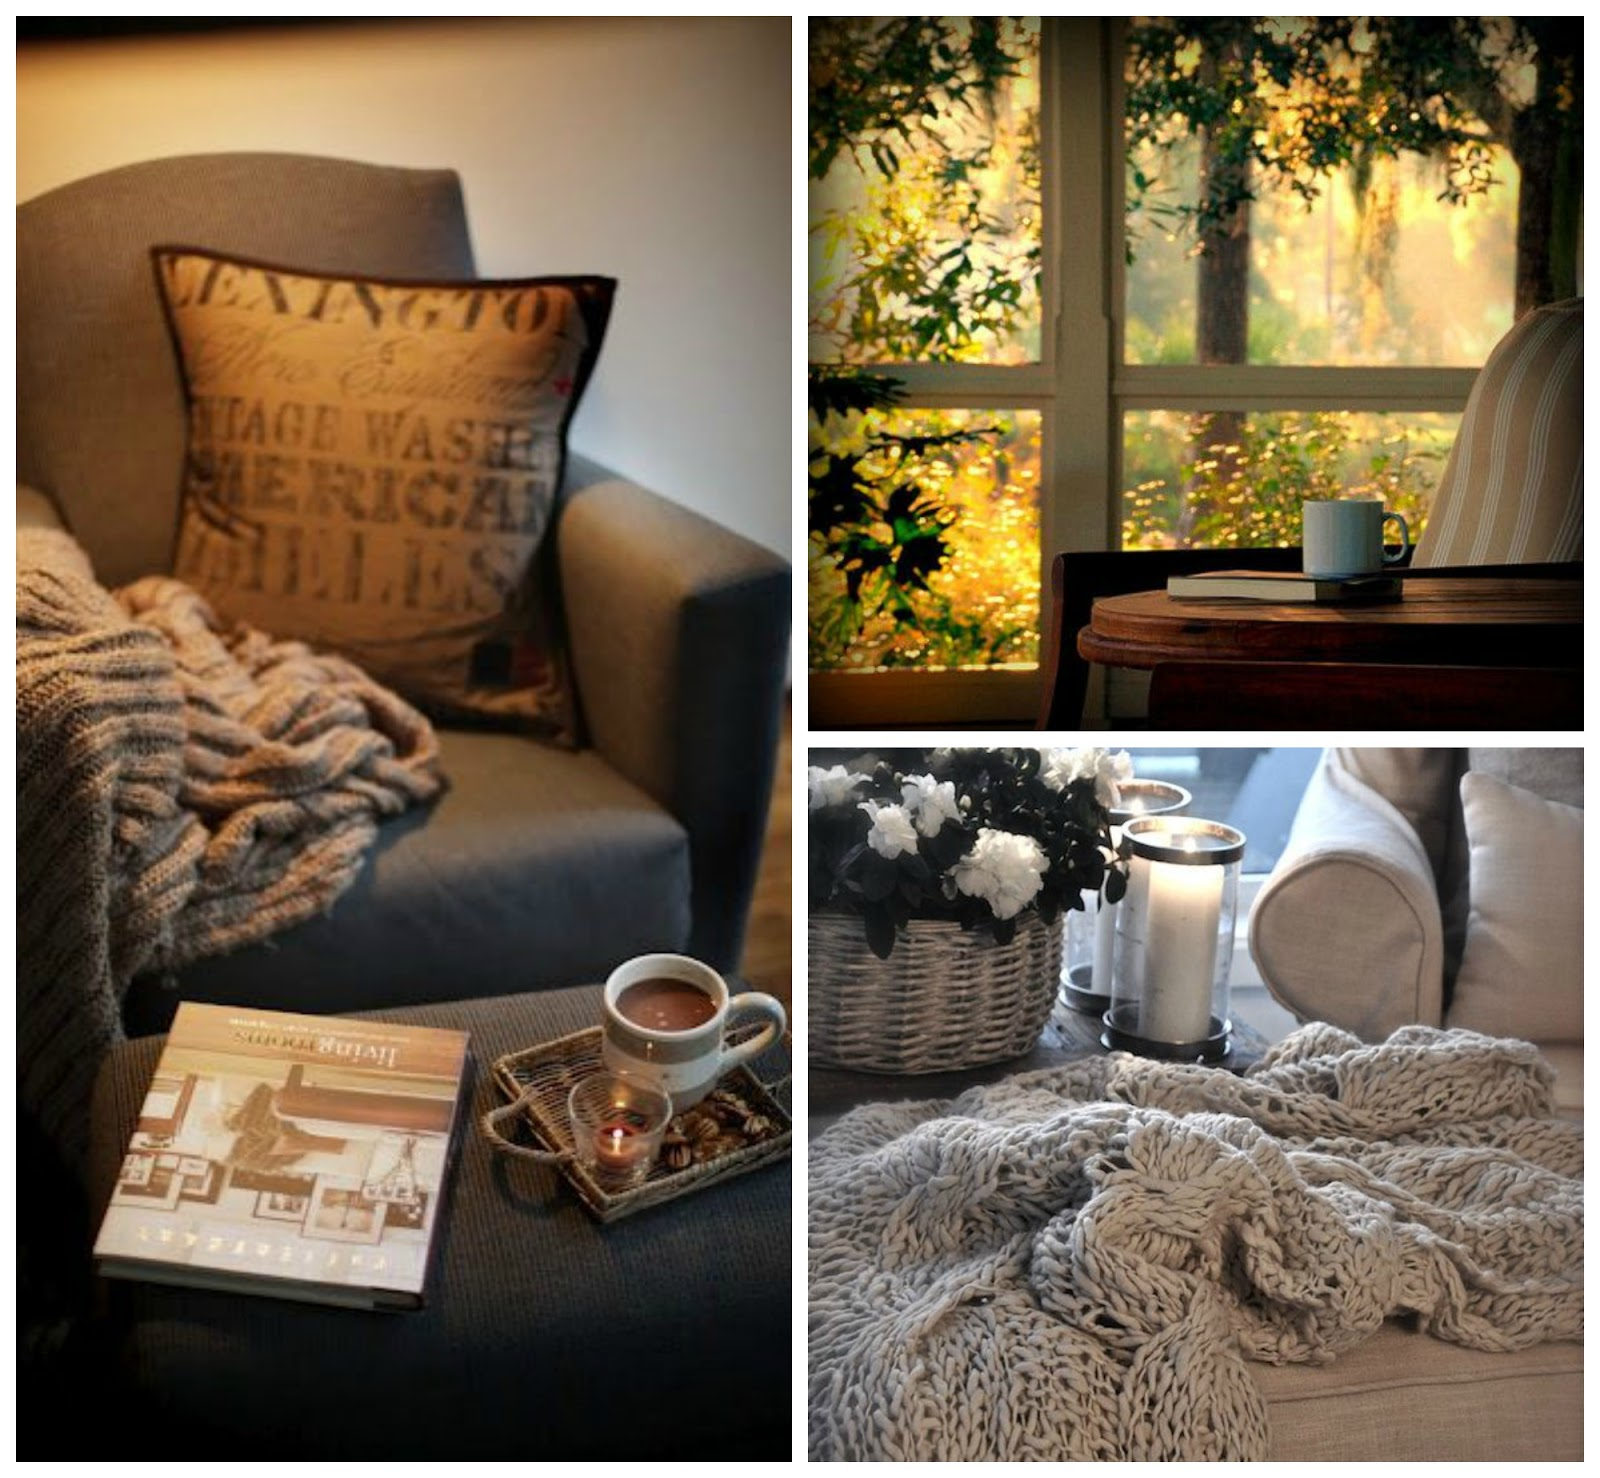 Part 2: How To Create A Cosy Home (Hygge